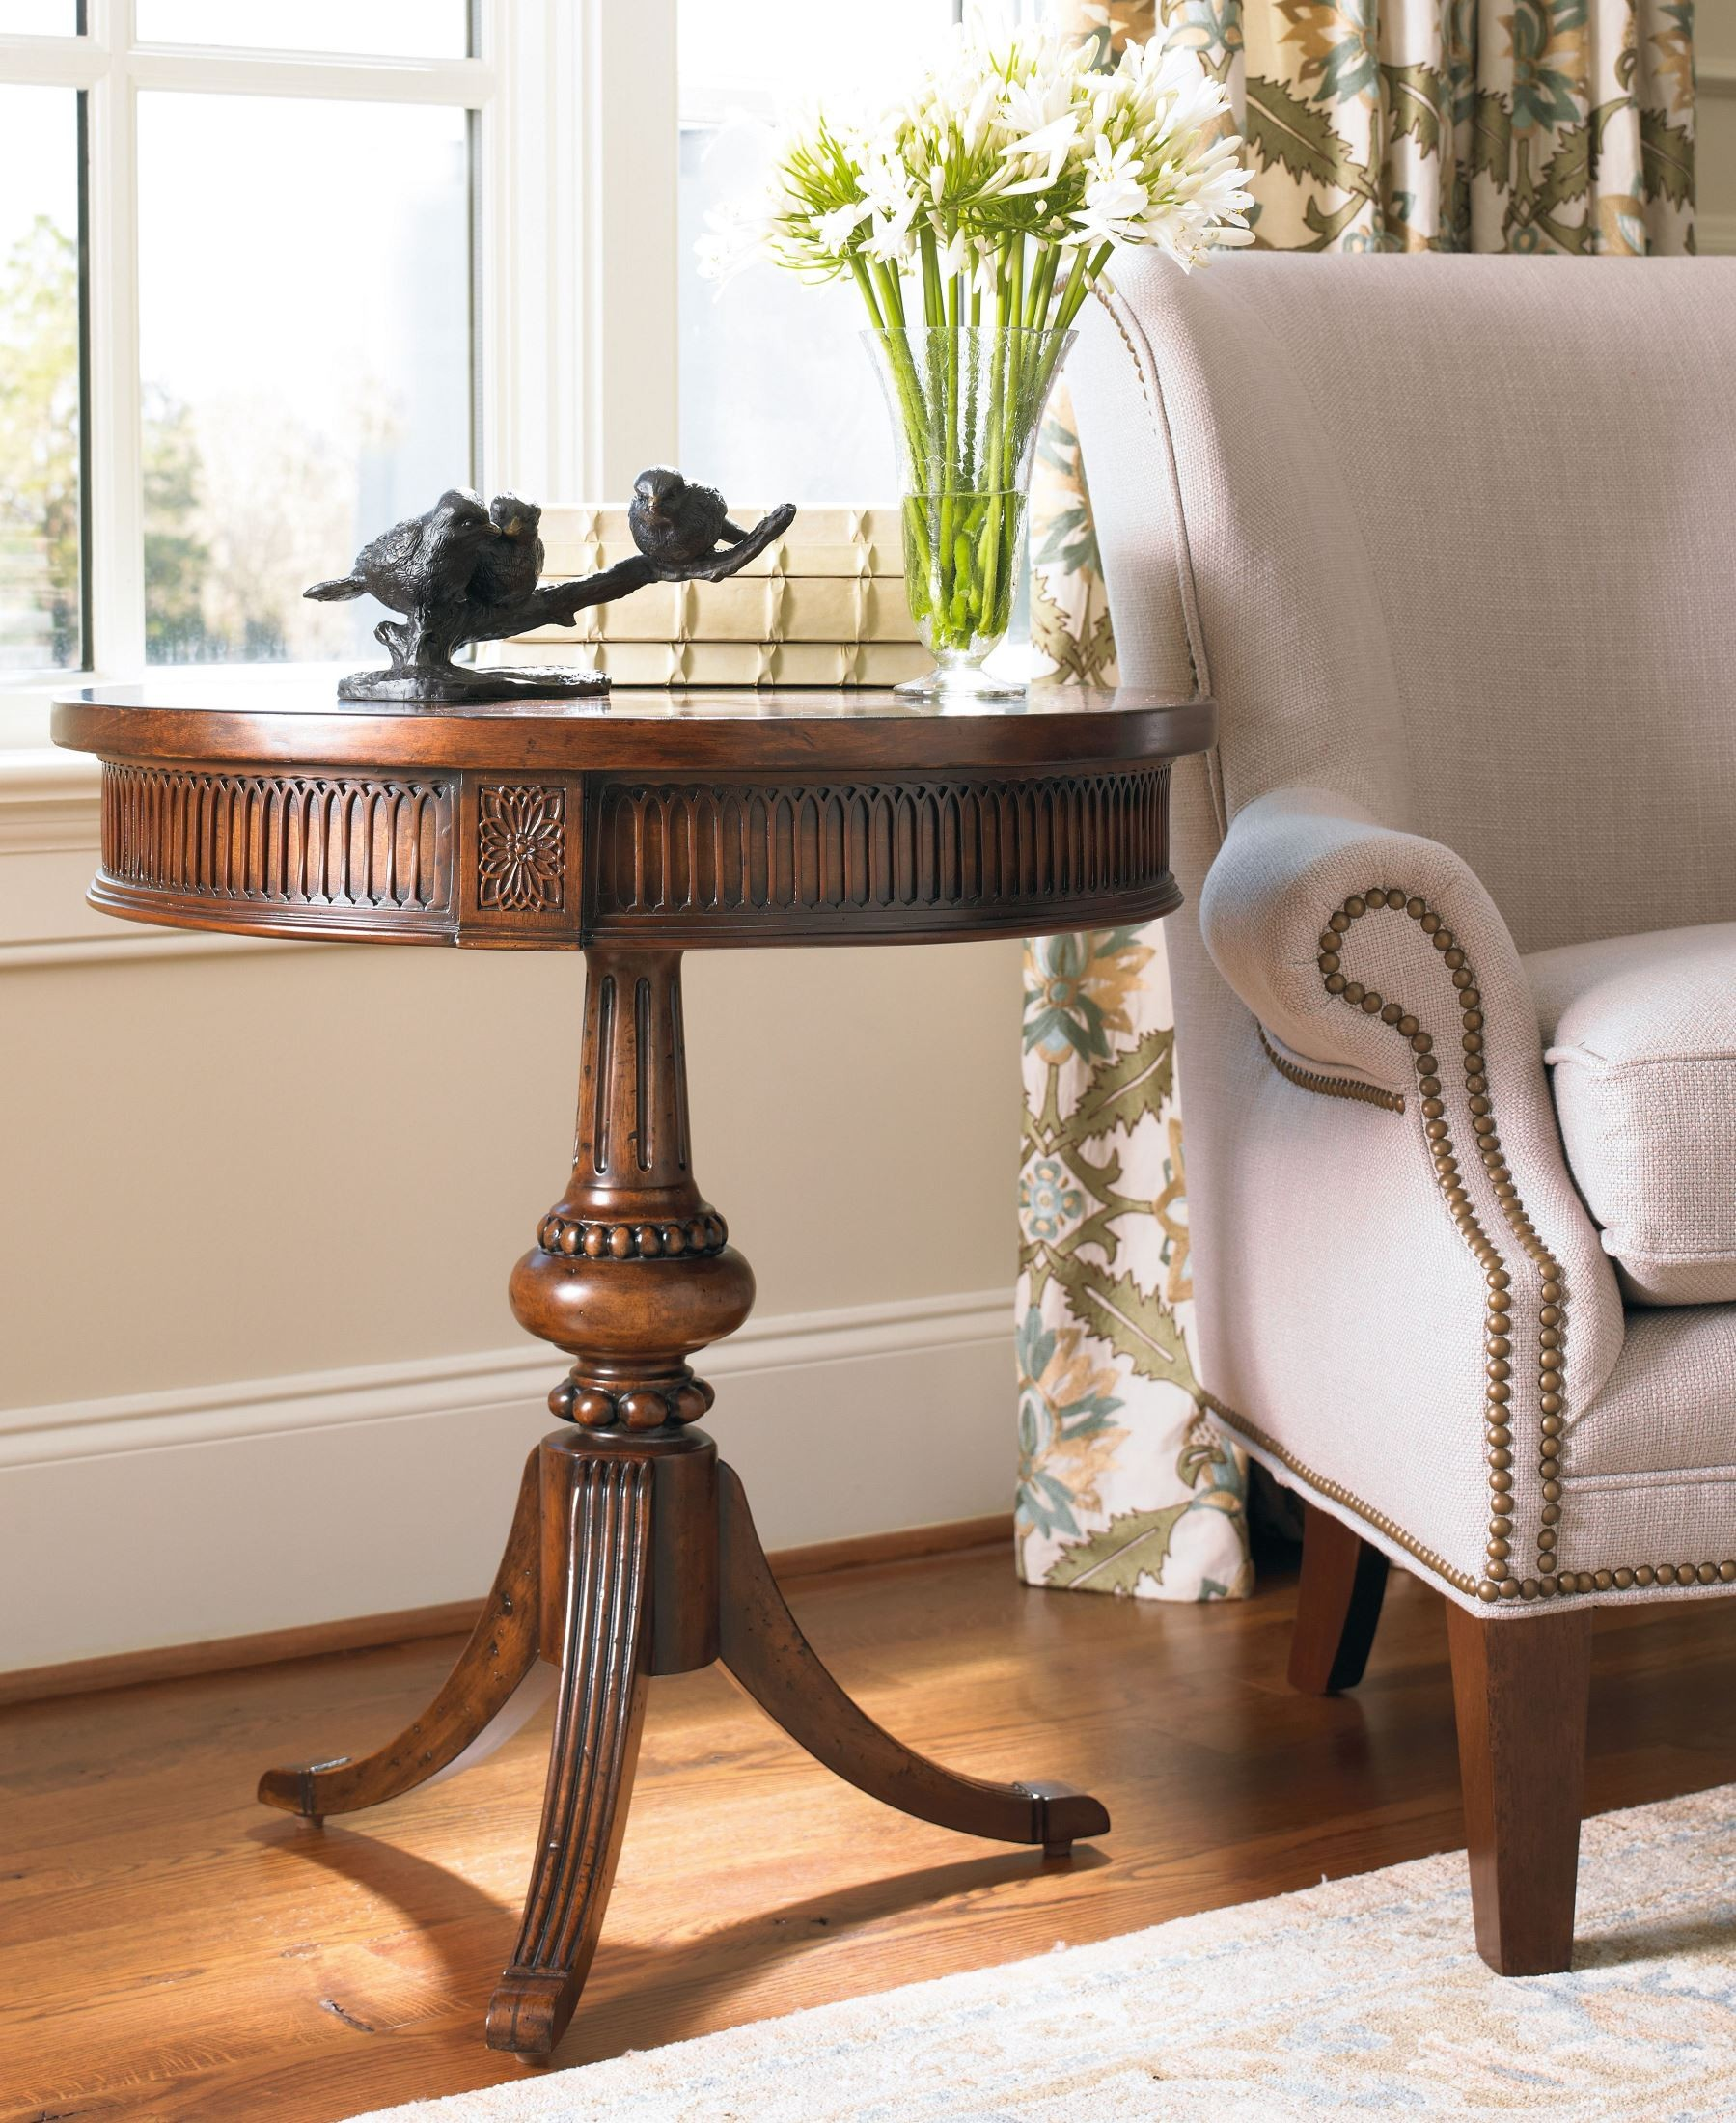 hooker medium wood round pedestal accent table collection pier one coupons printable office depot furniture patio cushions throne for drums target turquoise lamp swing cover small